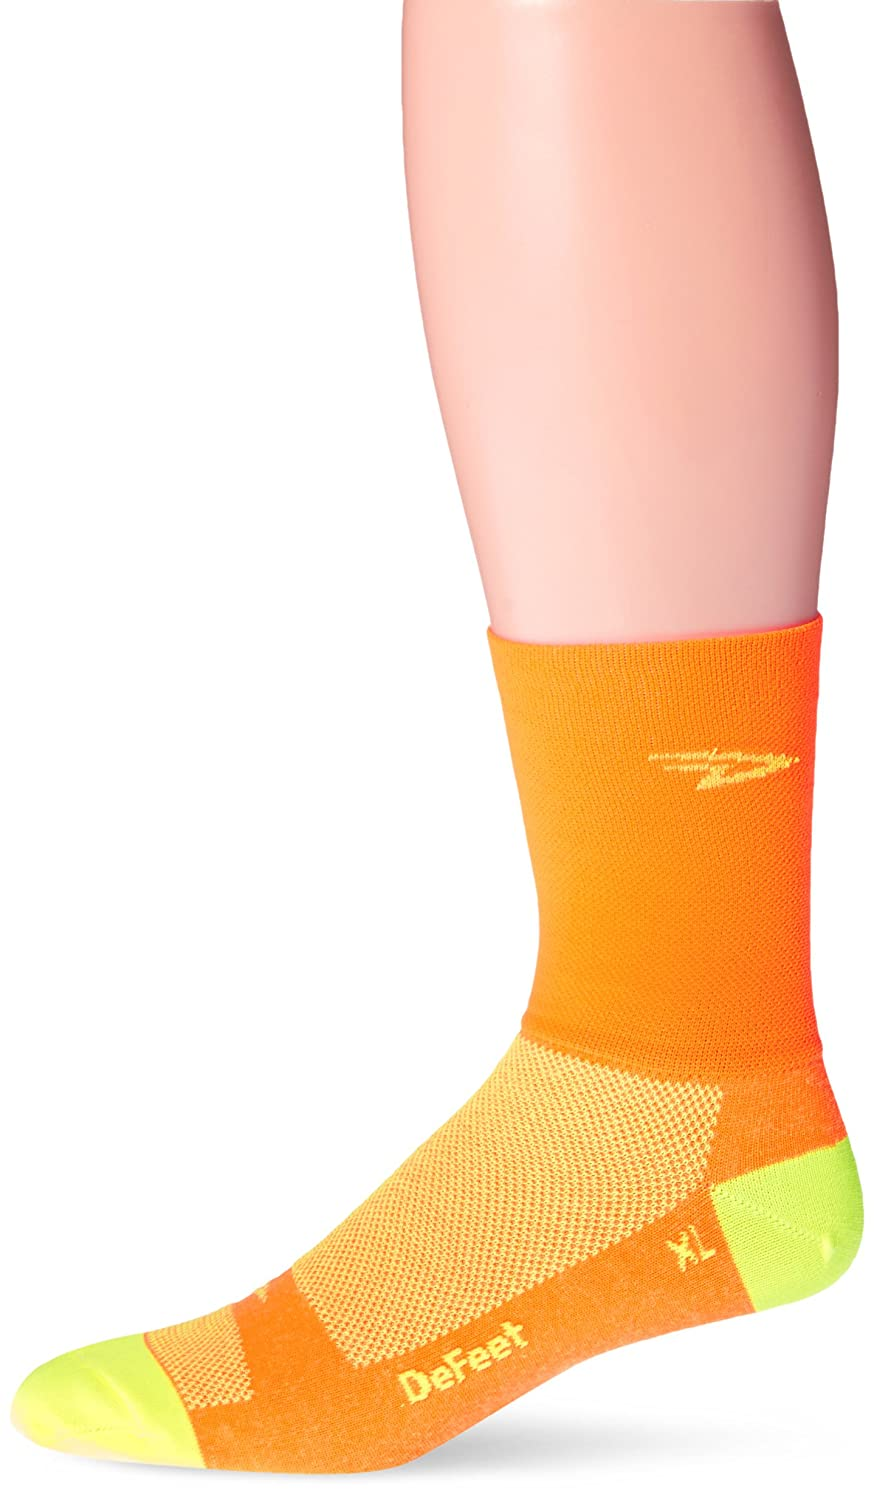 DeFeet Aireator 5 D-Logo Double Layer Cuff Socks AIRTHVY301